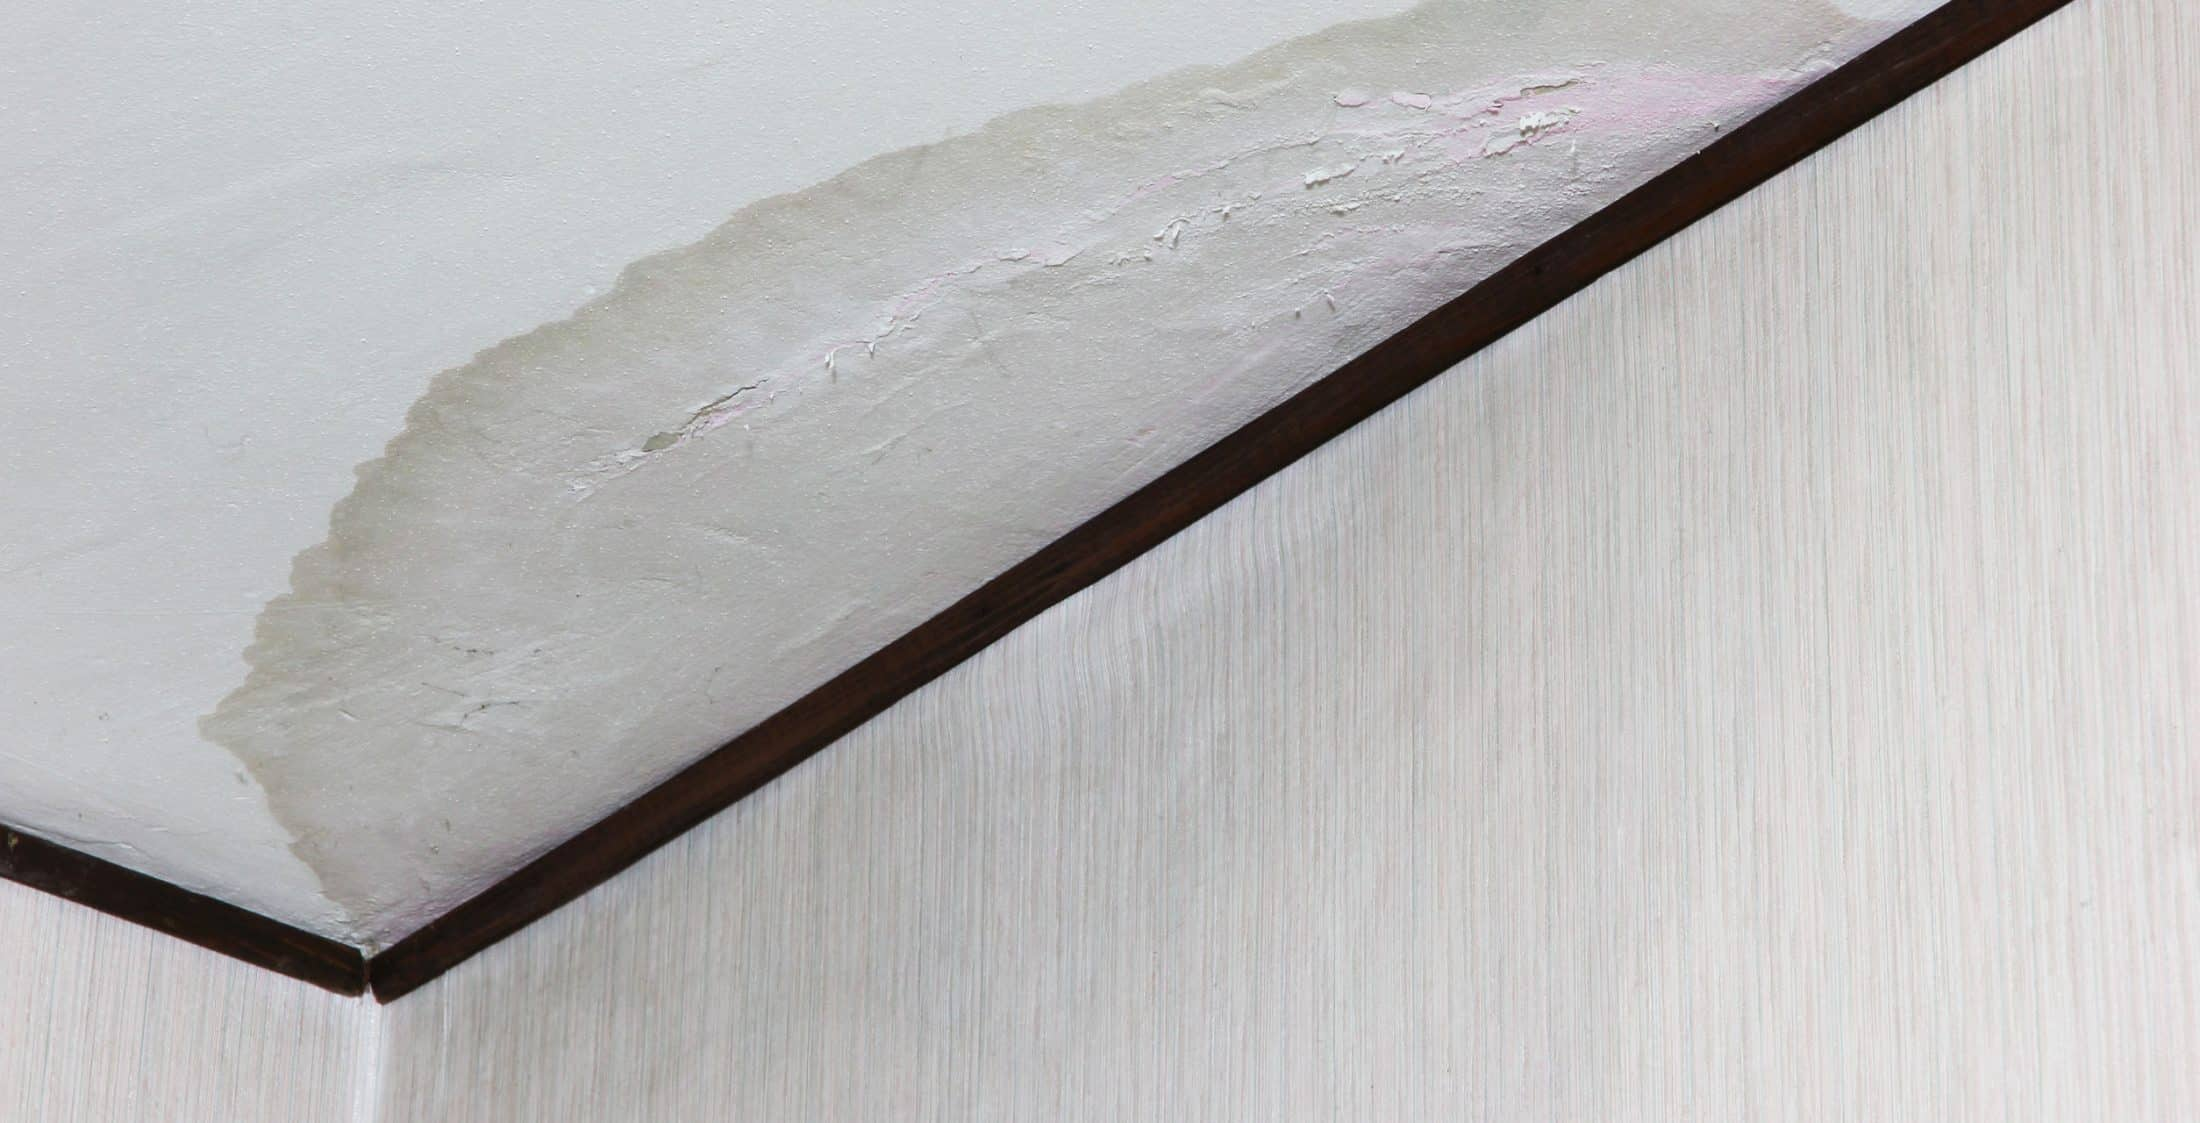 Water stain on a ceiling